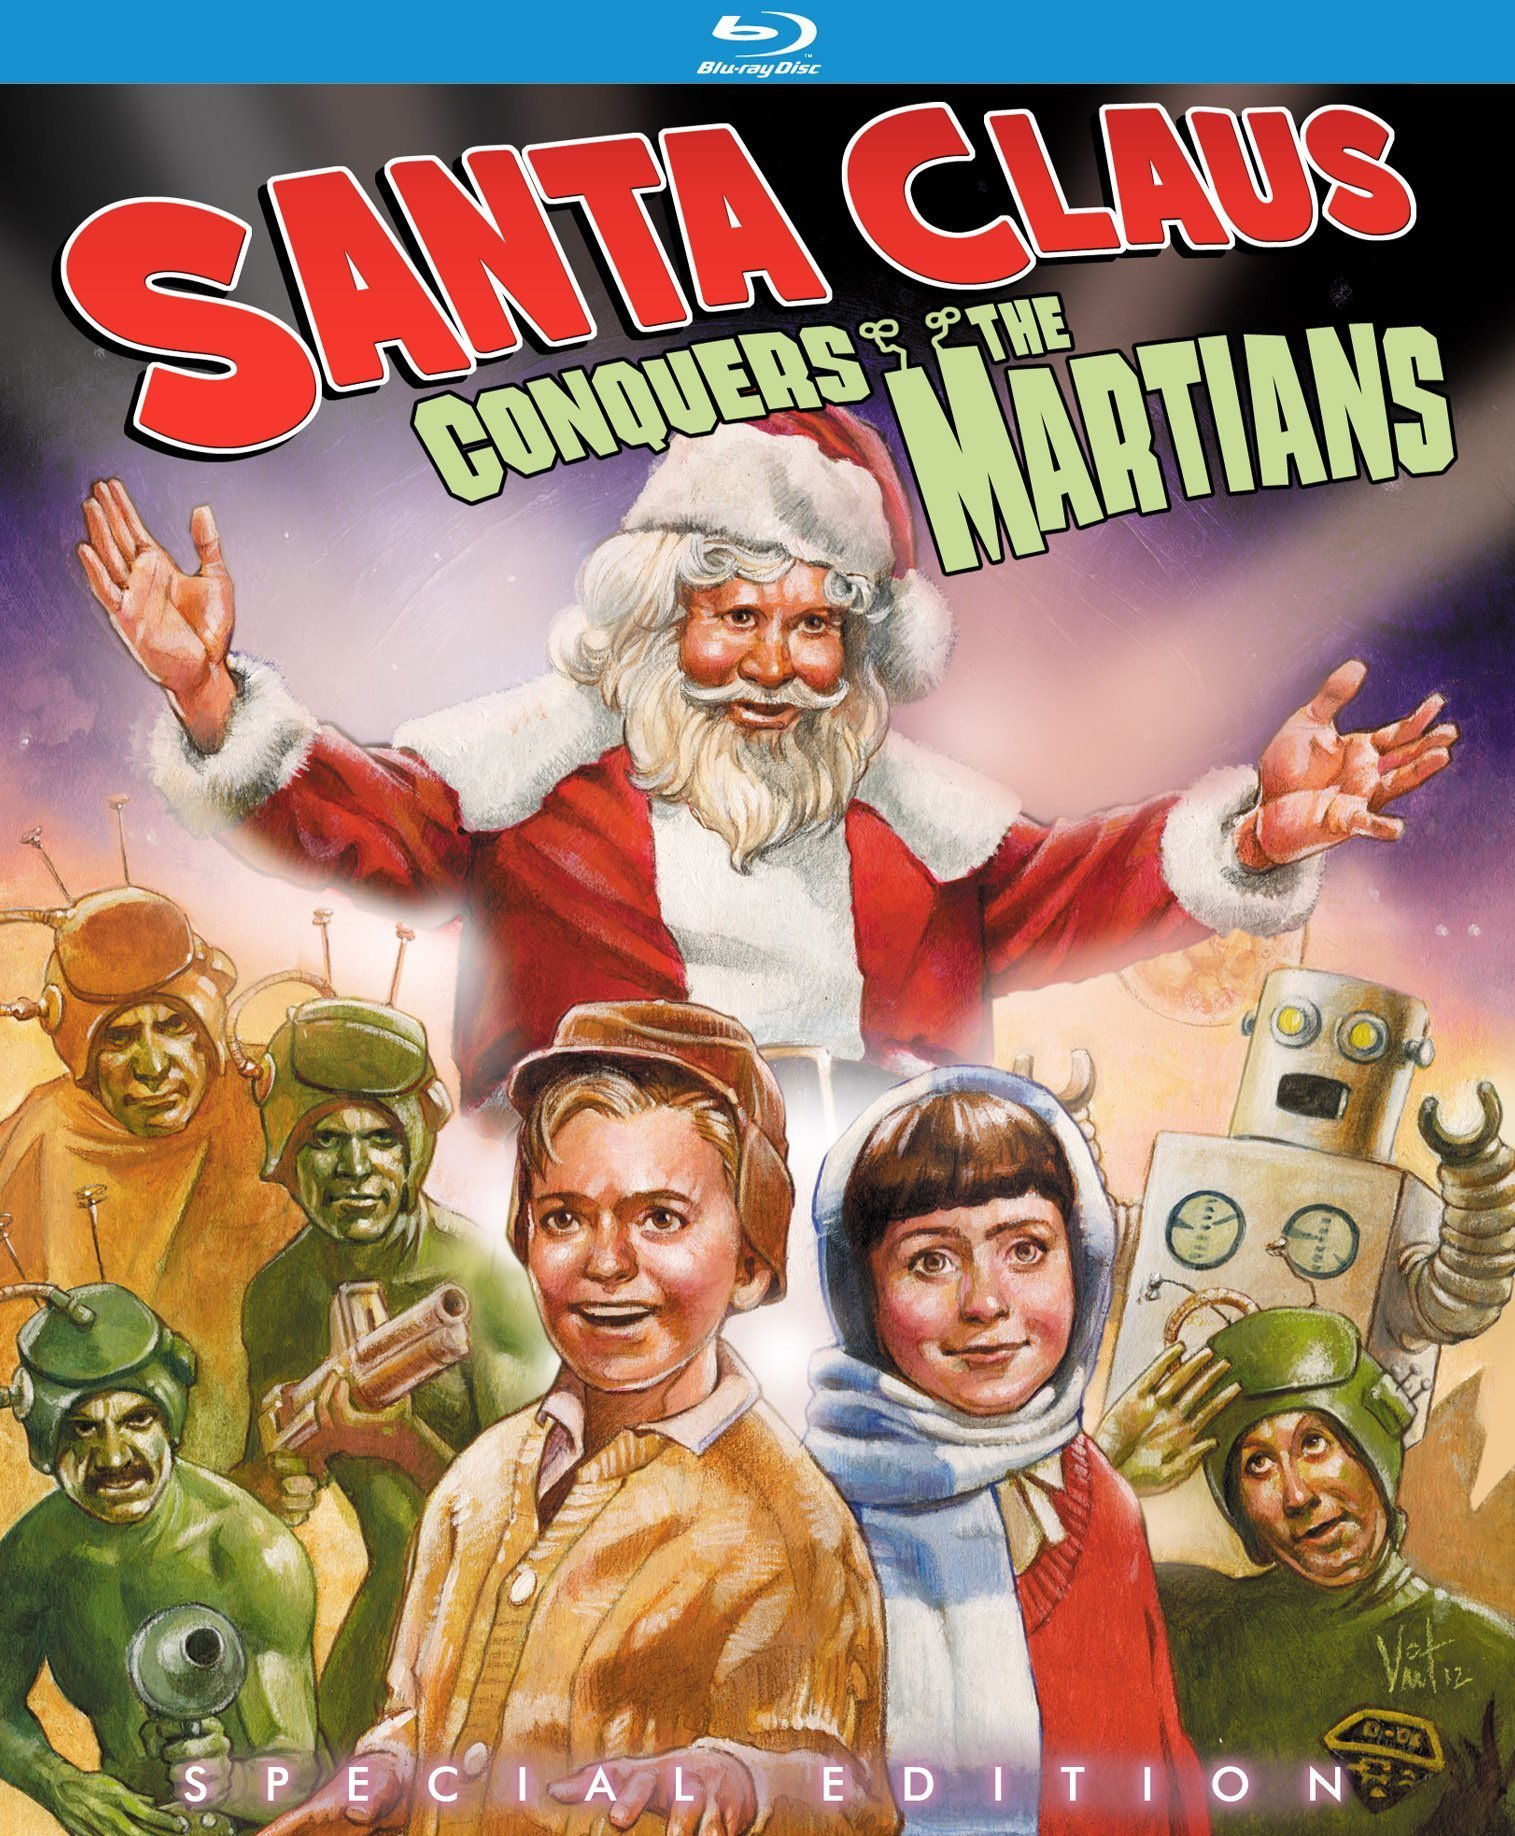 a santa clauss recount on coming to earth The jolly old elf - santa claus himself - is getting ready to deliver toys to the good boys and girls around the world tonight.